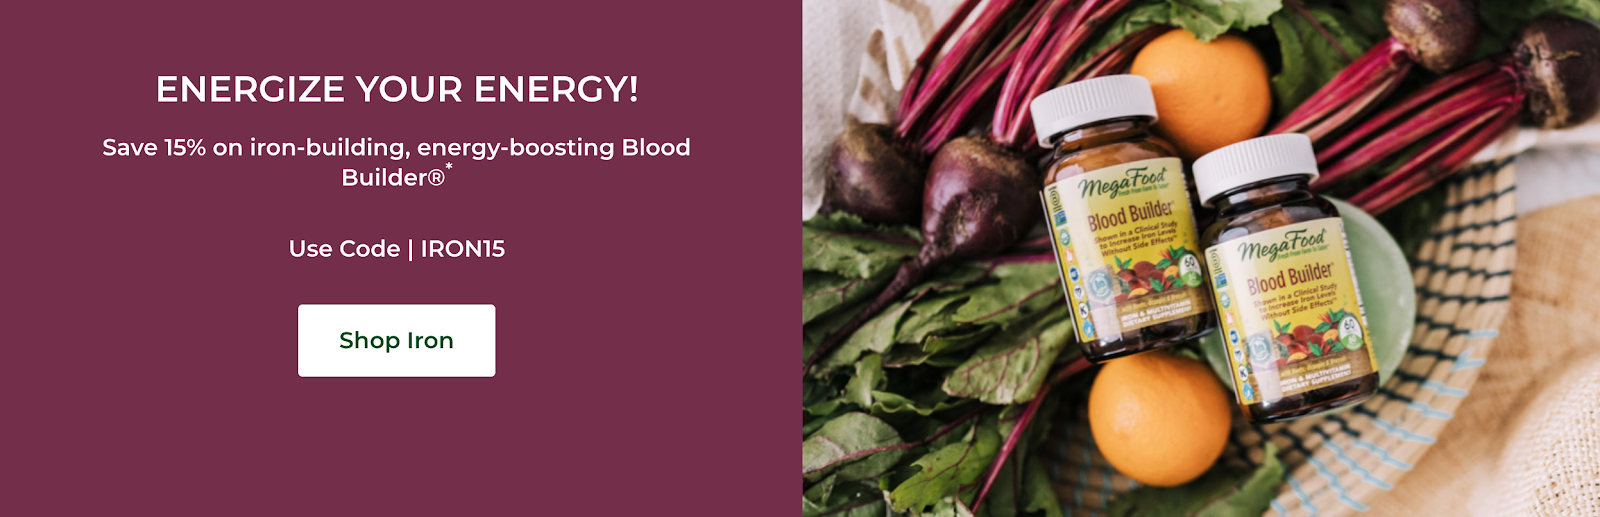 MegaFood - Energy Boosting Blood Builder | Influencer Partnership Programs for Wellness & Fitness Influencers